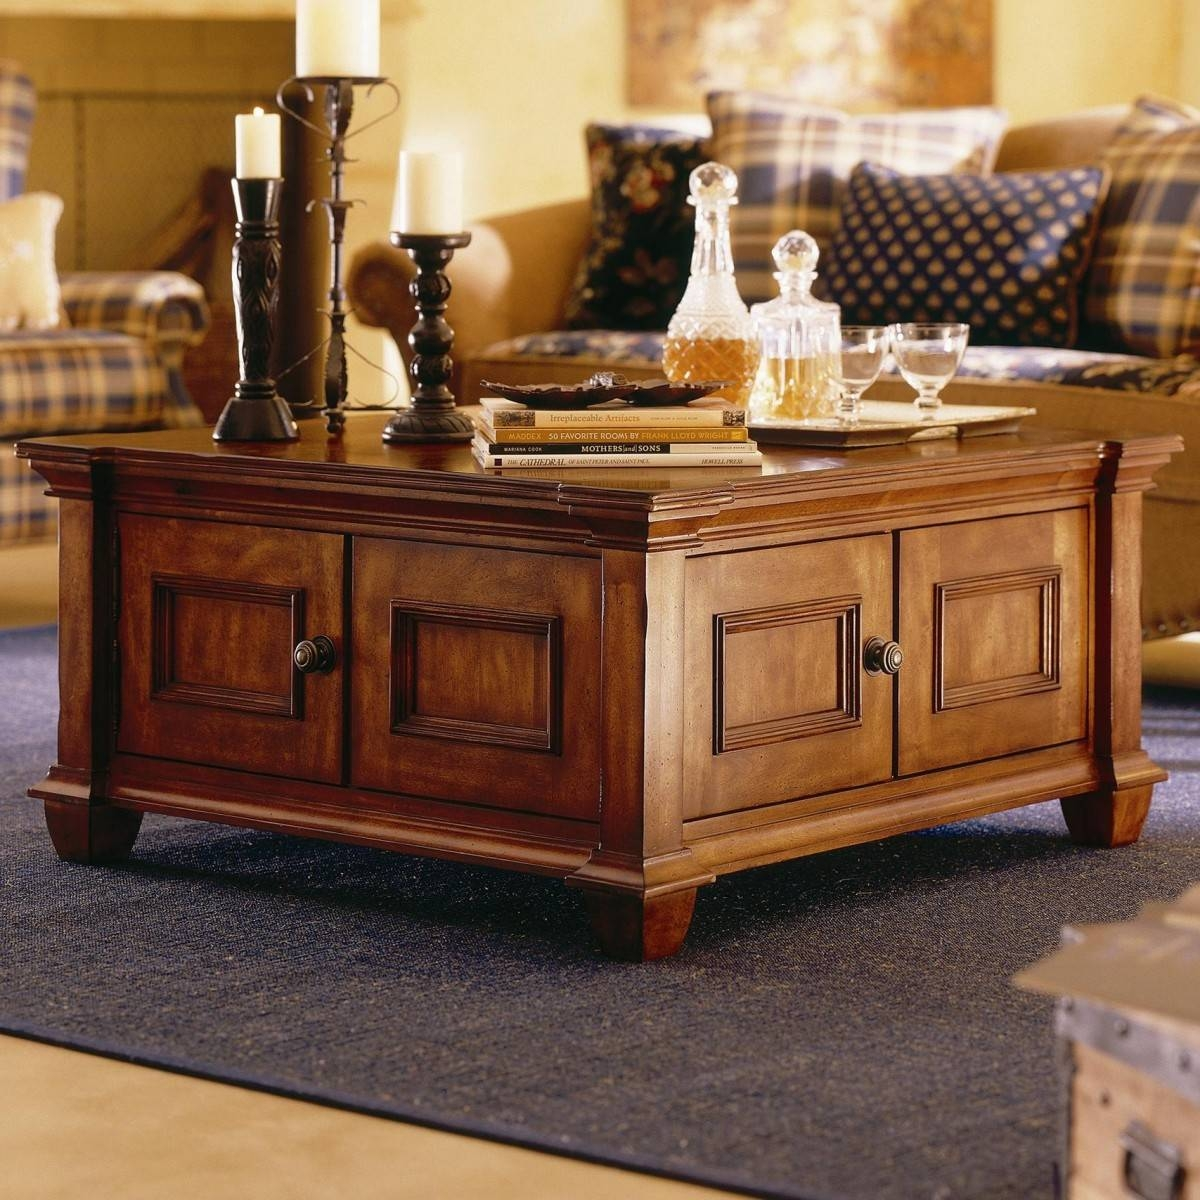 Excellent Square Coffee Tables With Storage Pictures Decoration pertaining to Large Square Wood Coffee Tables (Image 8 of 30)